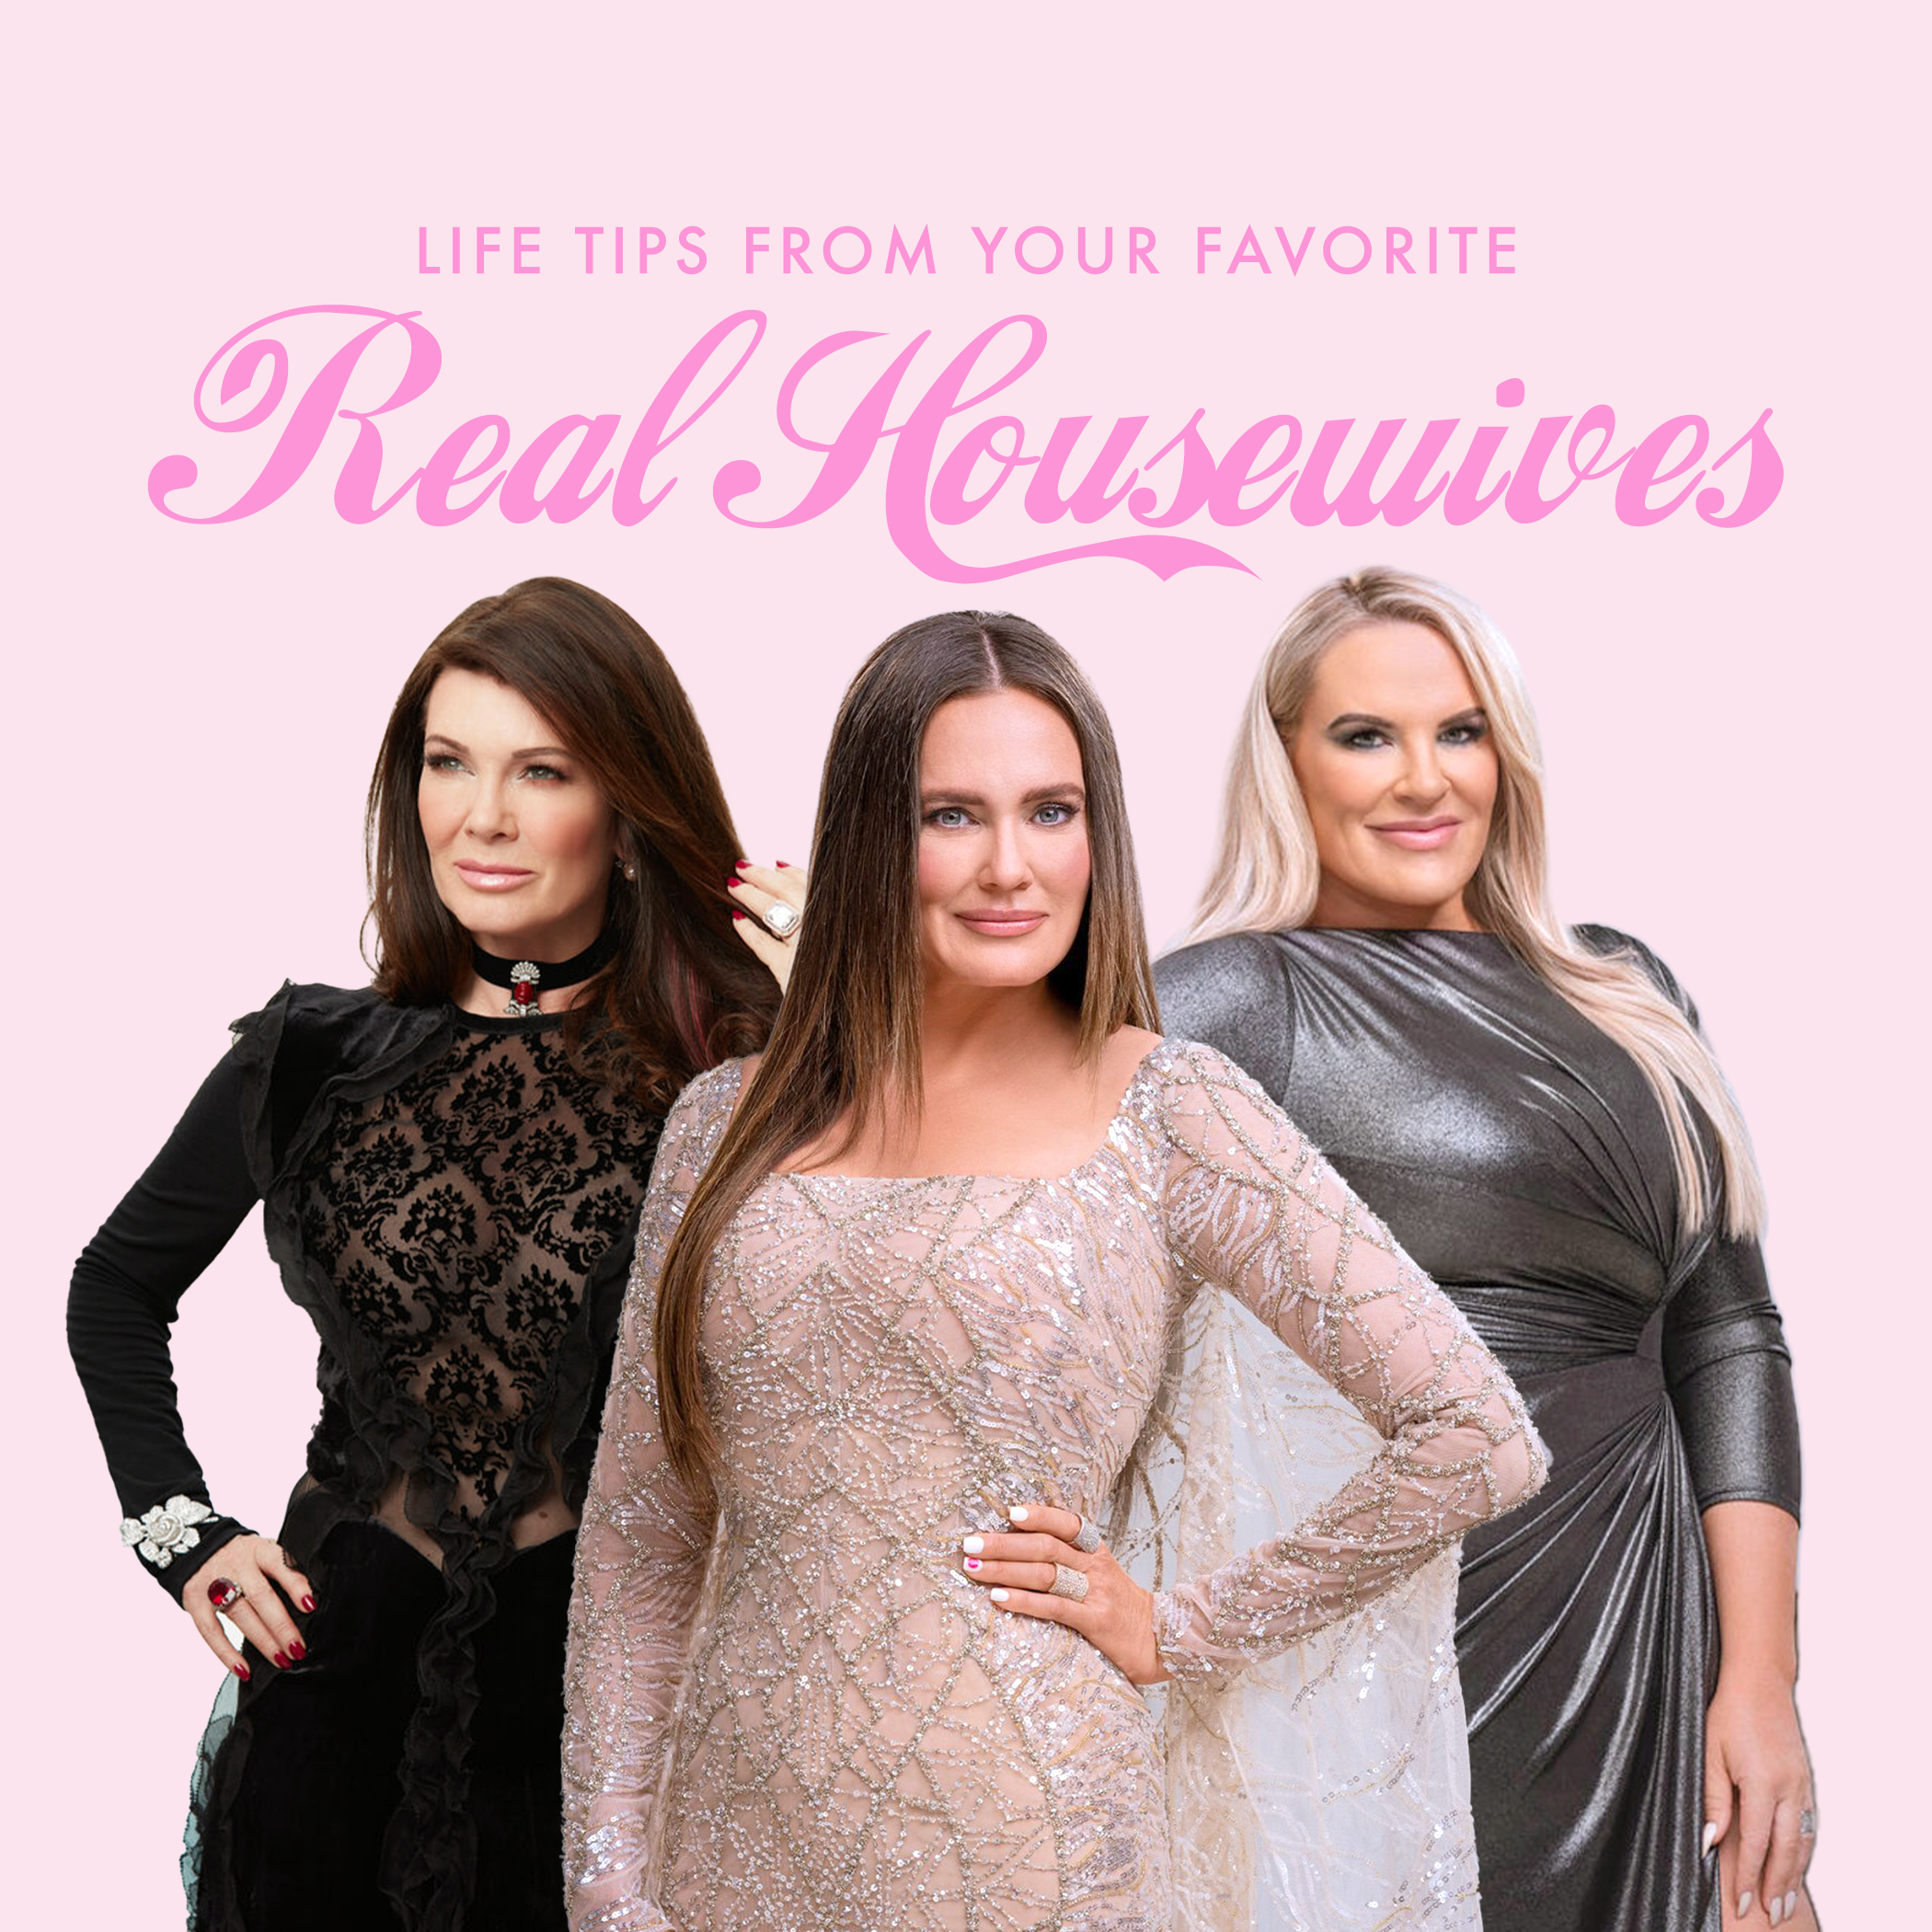 Life Tips From Your Favorite Real Housewives